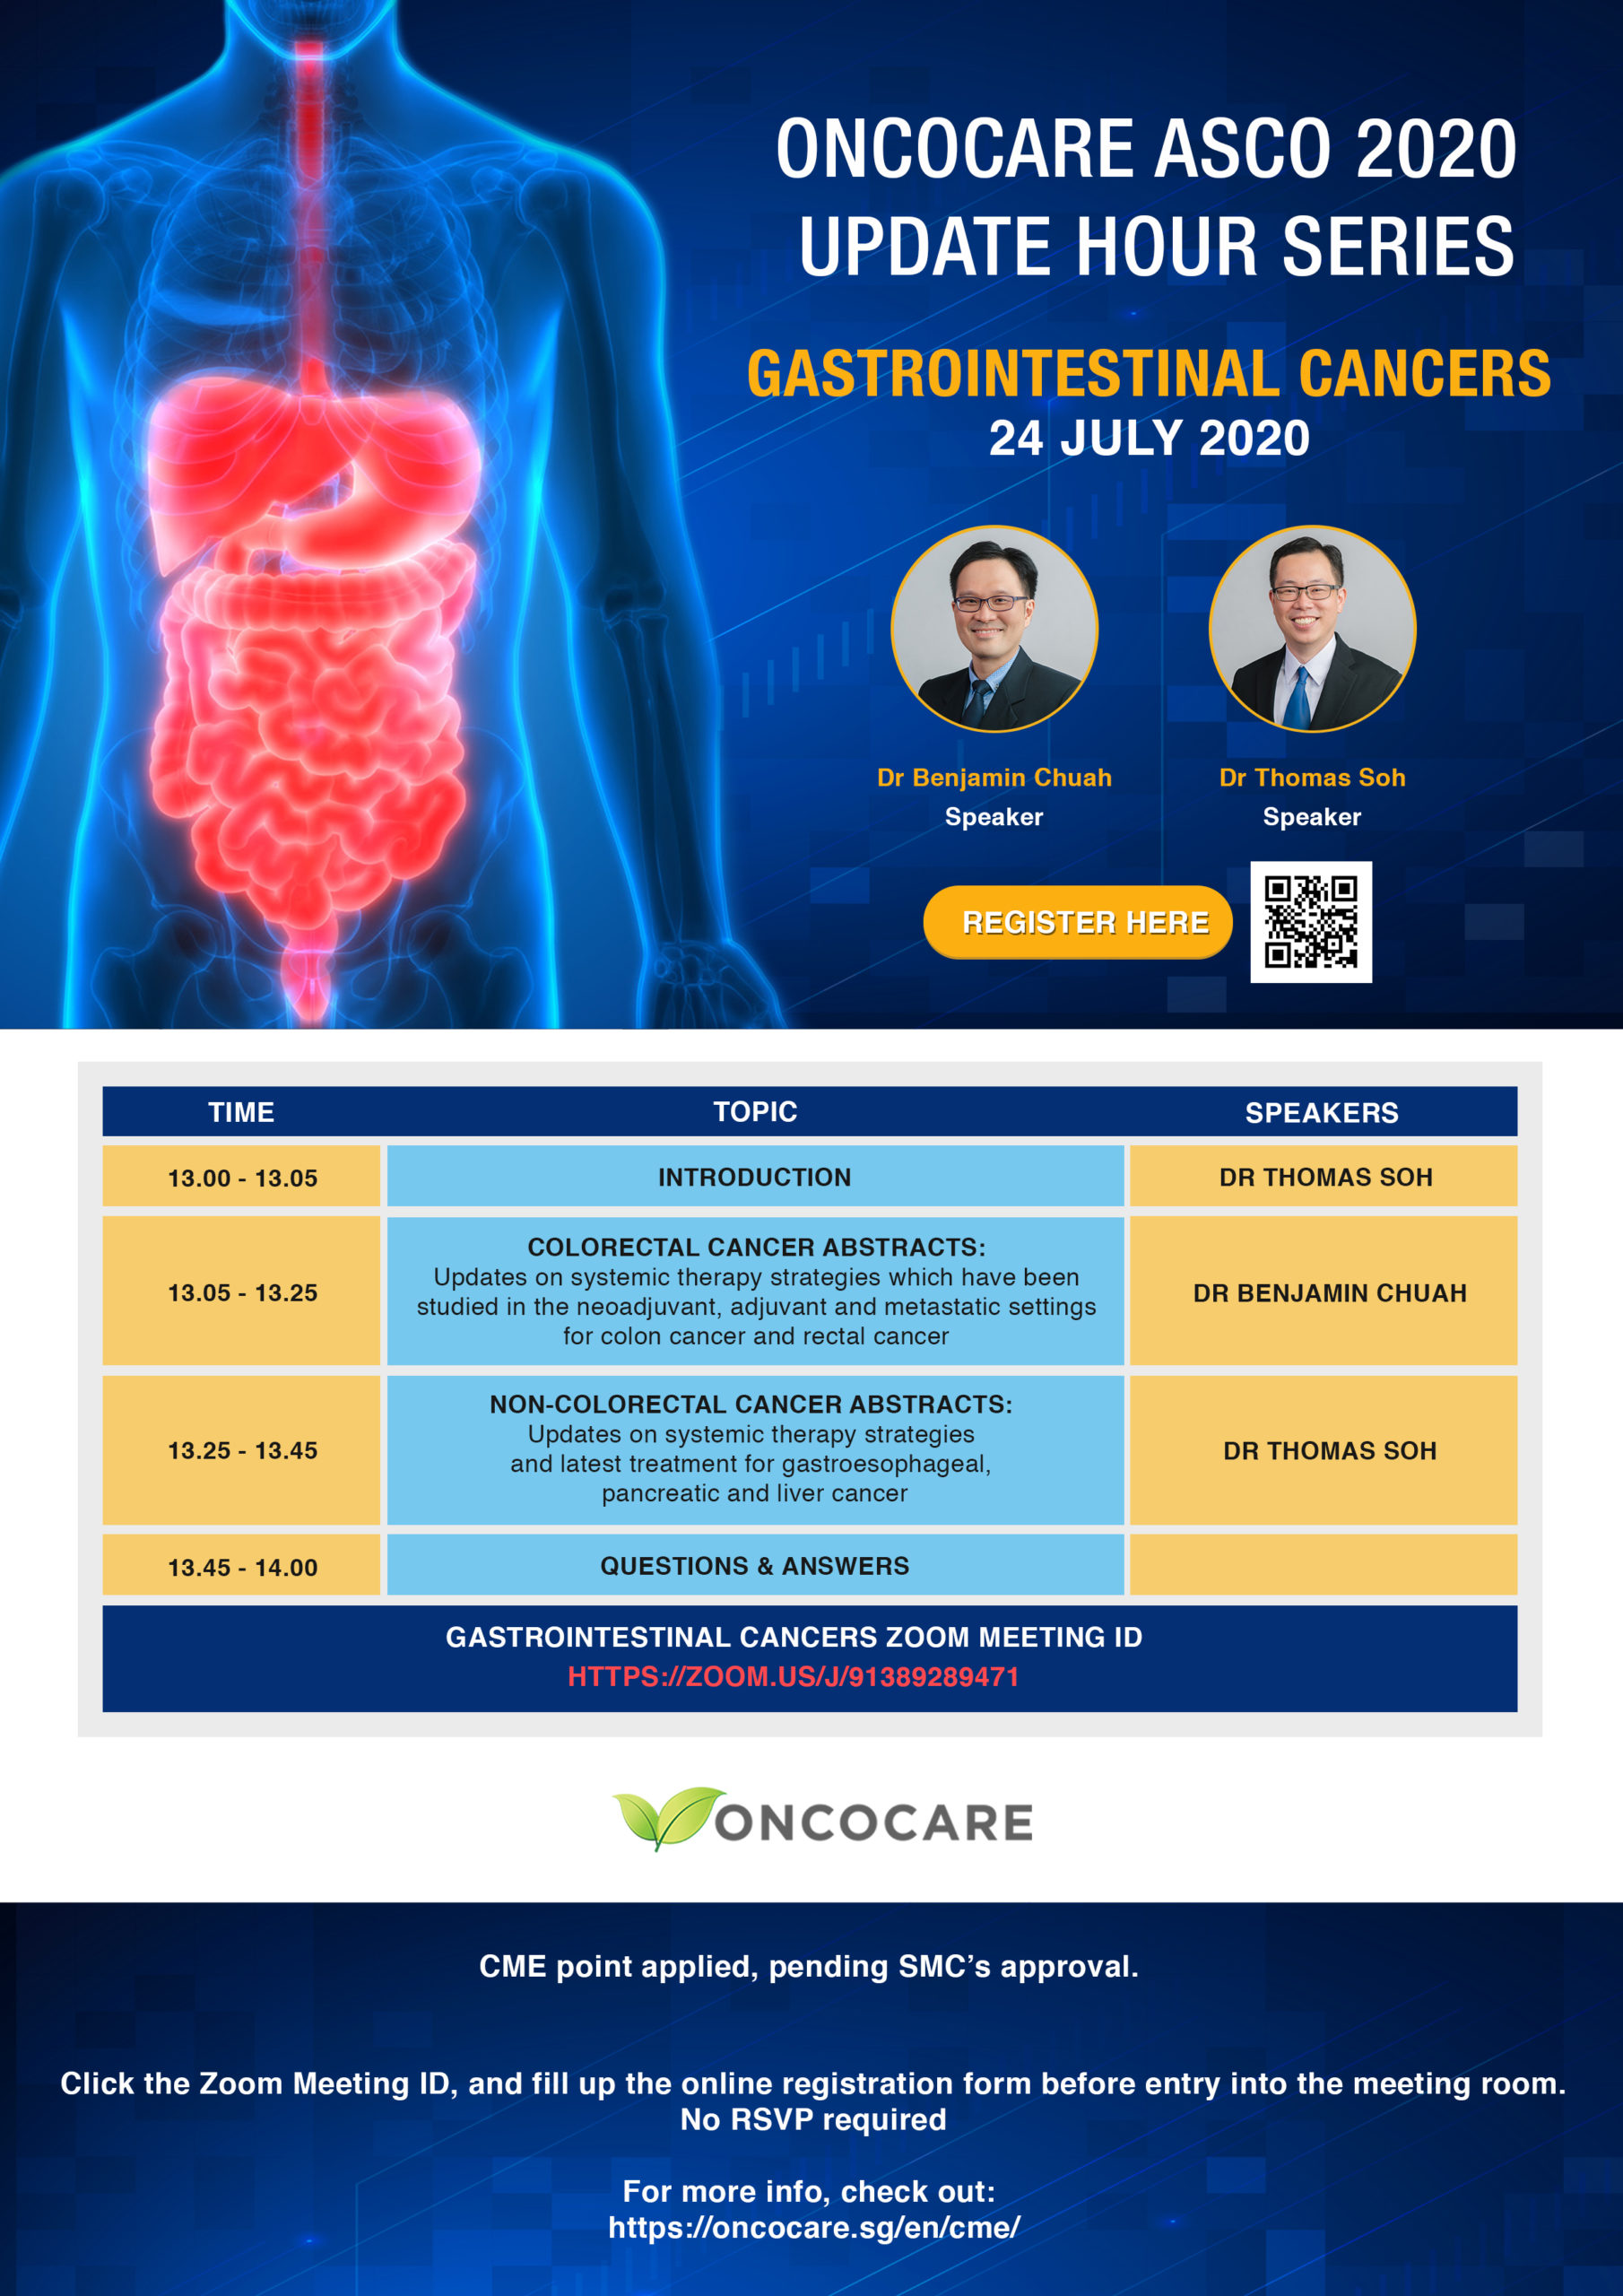 OncoCare ASCO 2020 Updates Hour on GASTROINTESTINAL (GI) CANCERS